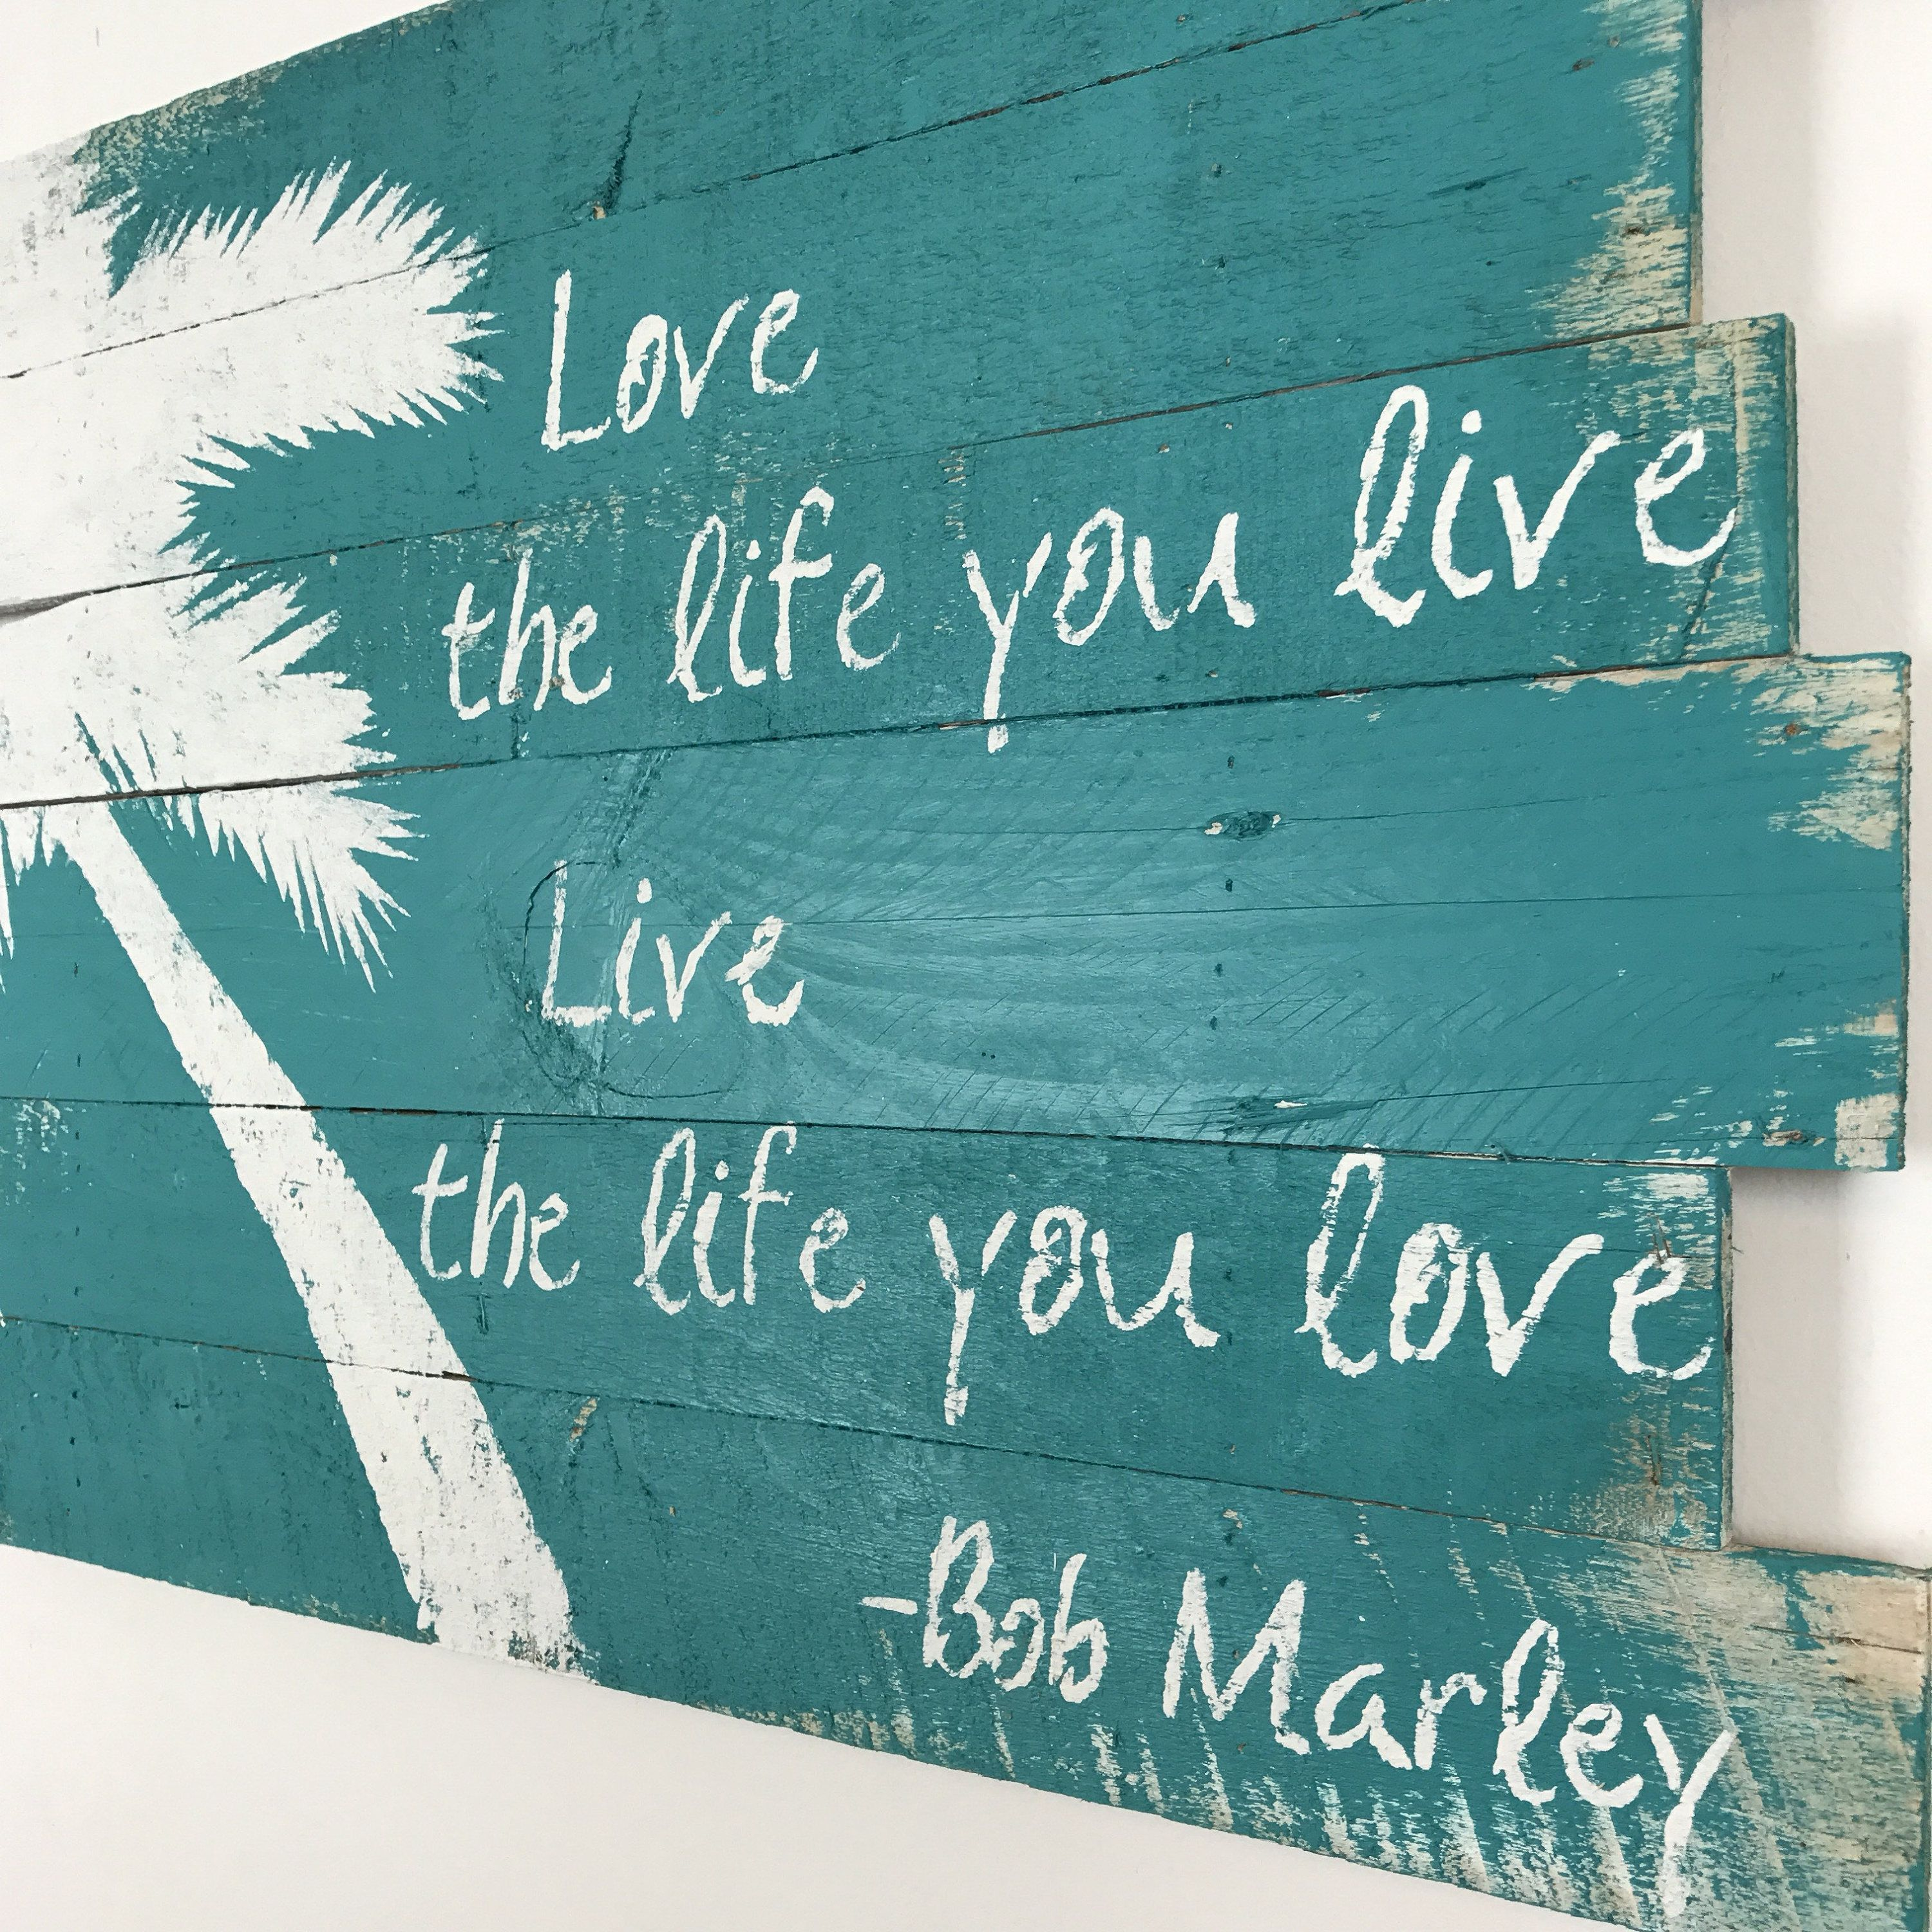 Beach Decor Bob Marley Palm Tree and Love the Life White Palm Tree on Teal Background reclaimed pallet wood 21L x 32W - beach house